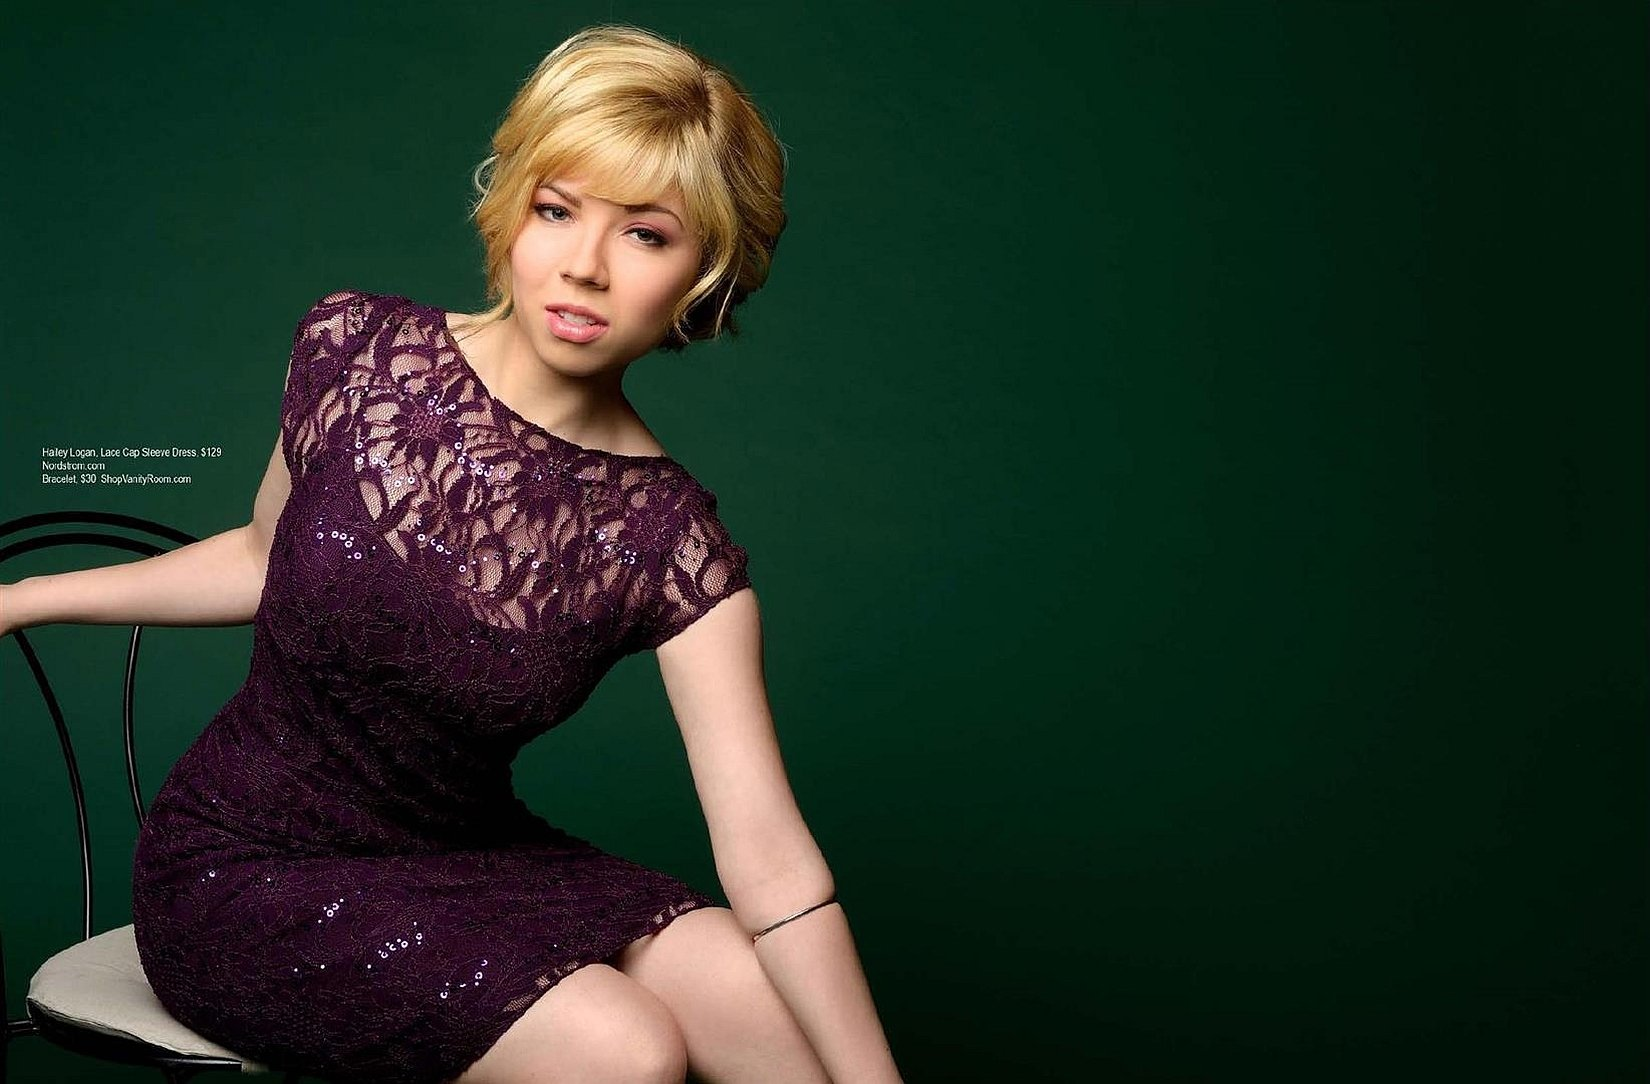 1650x1084 - Jennette McCurdy Wallpapers 9